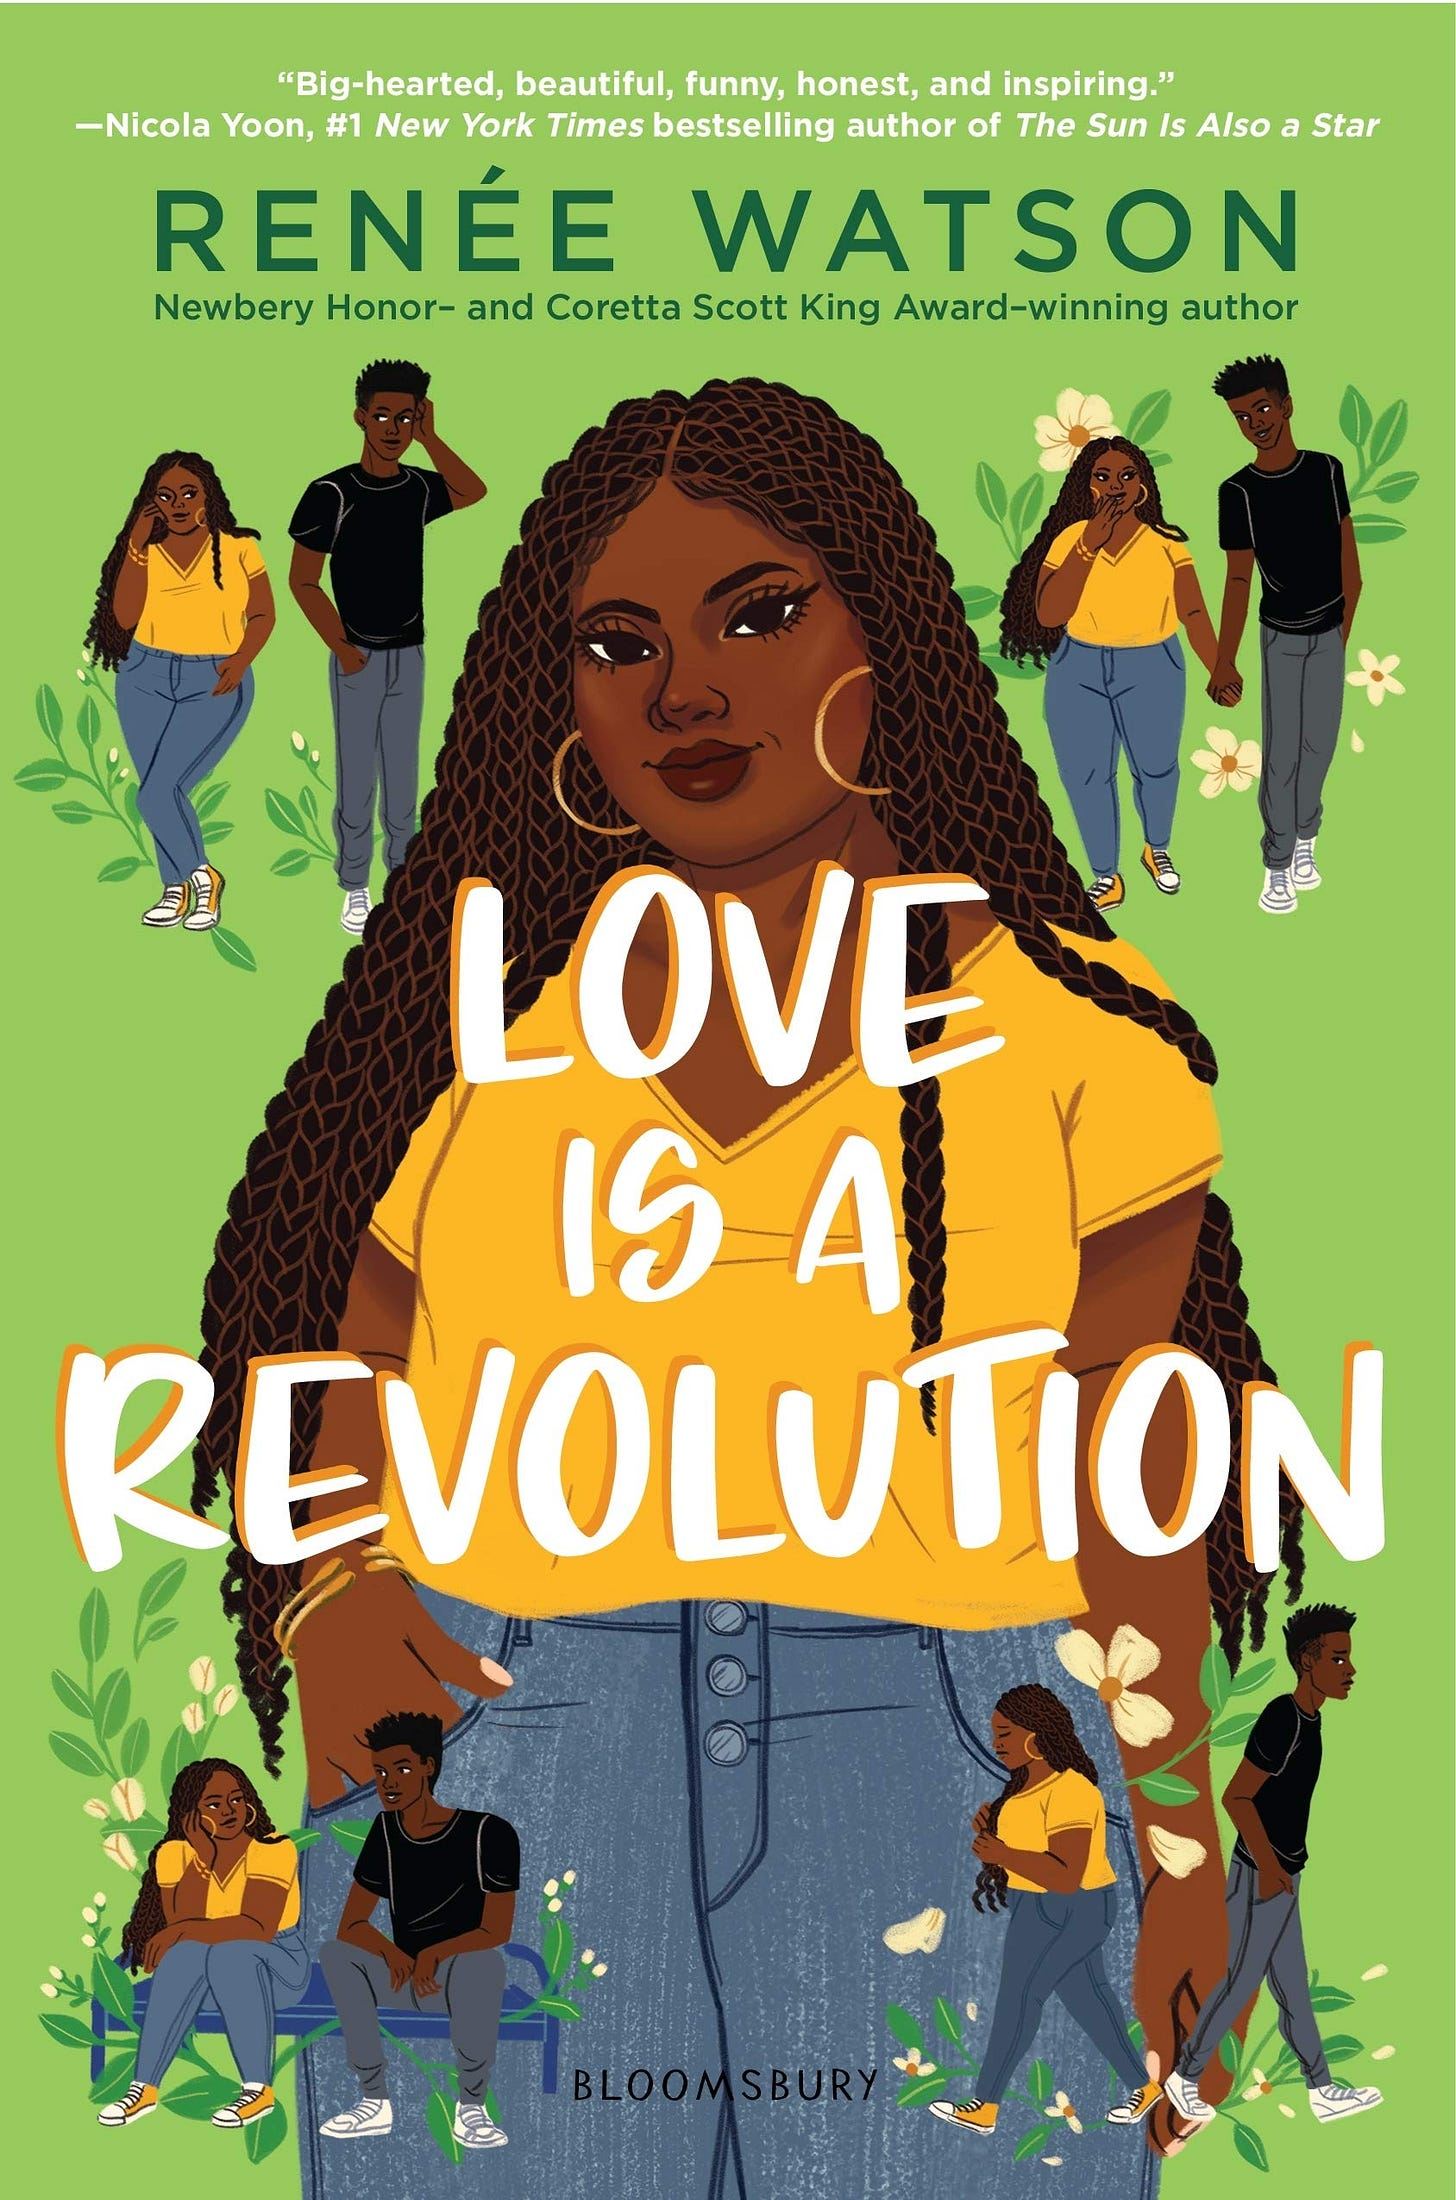 Amazon.com: Love Is a Revolution (9781547600601): Watson, Renée: Books